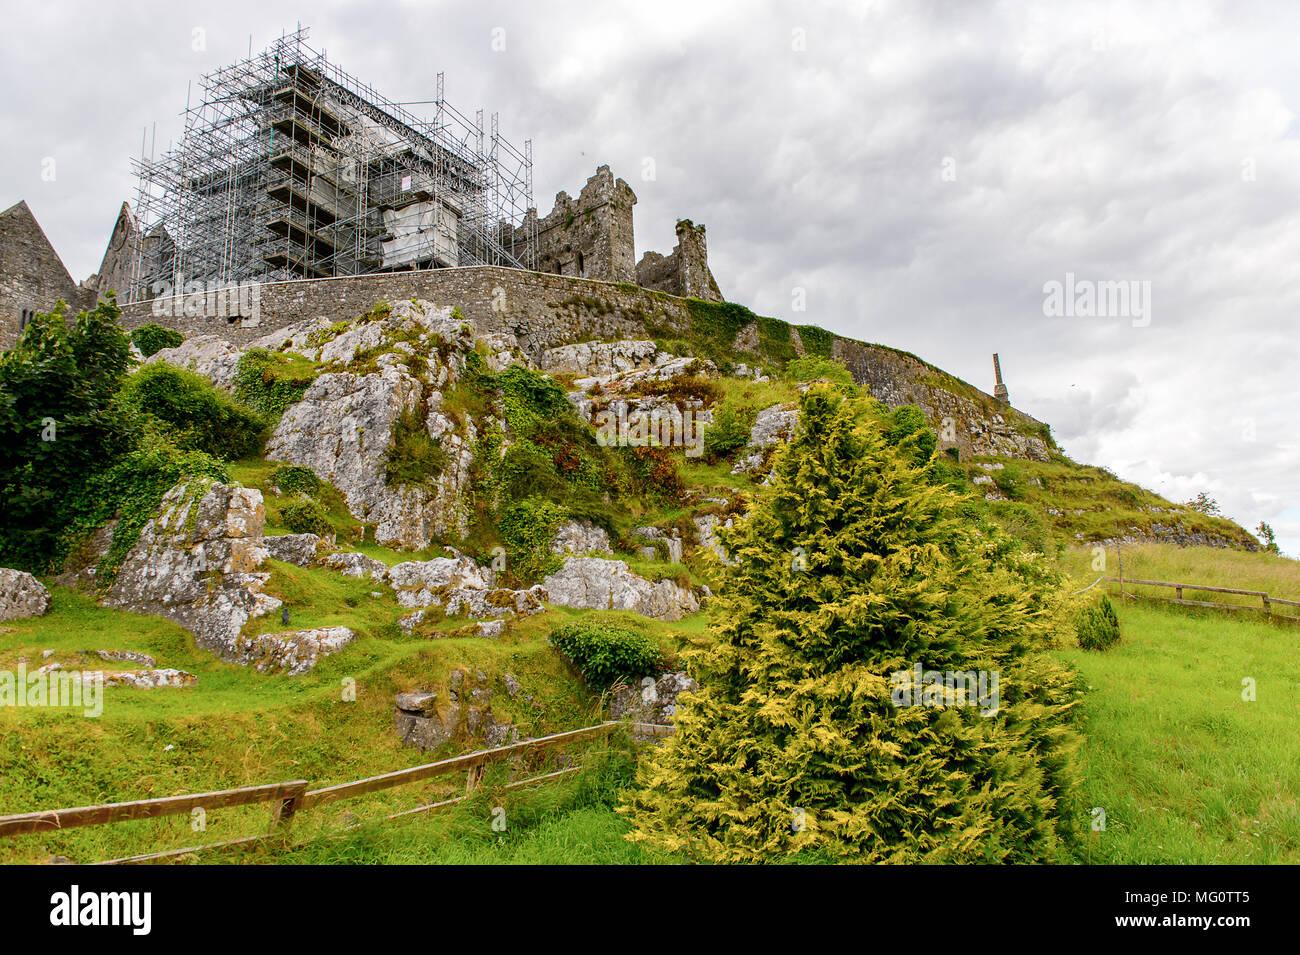 Rock of Cashel Carraig Phadraig), Cashel of the Kings and St. Patrick's Rock, is a historic site at  County Tipperary, Ireland - Stock Image